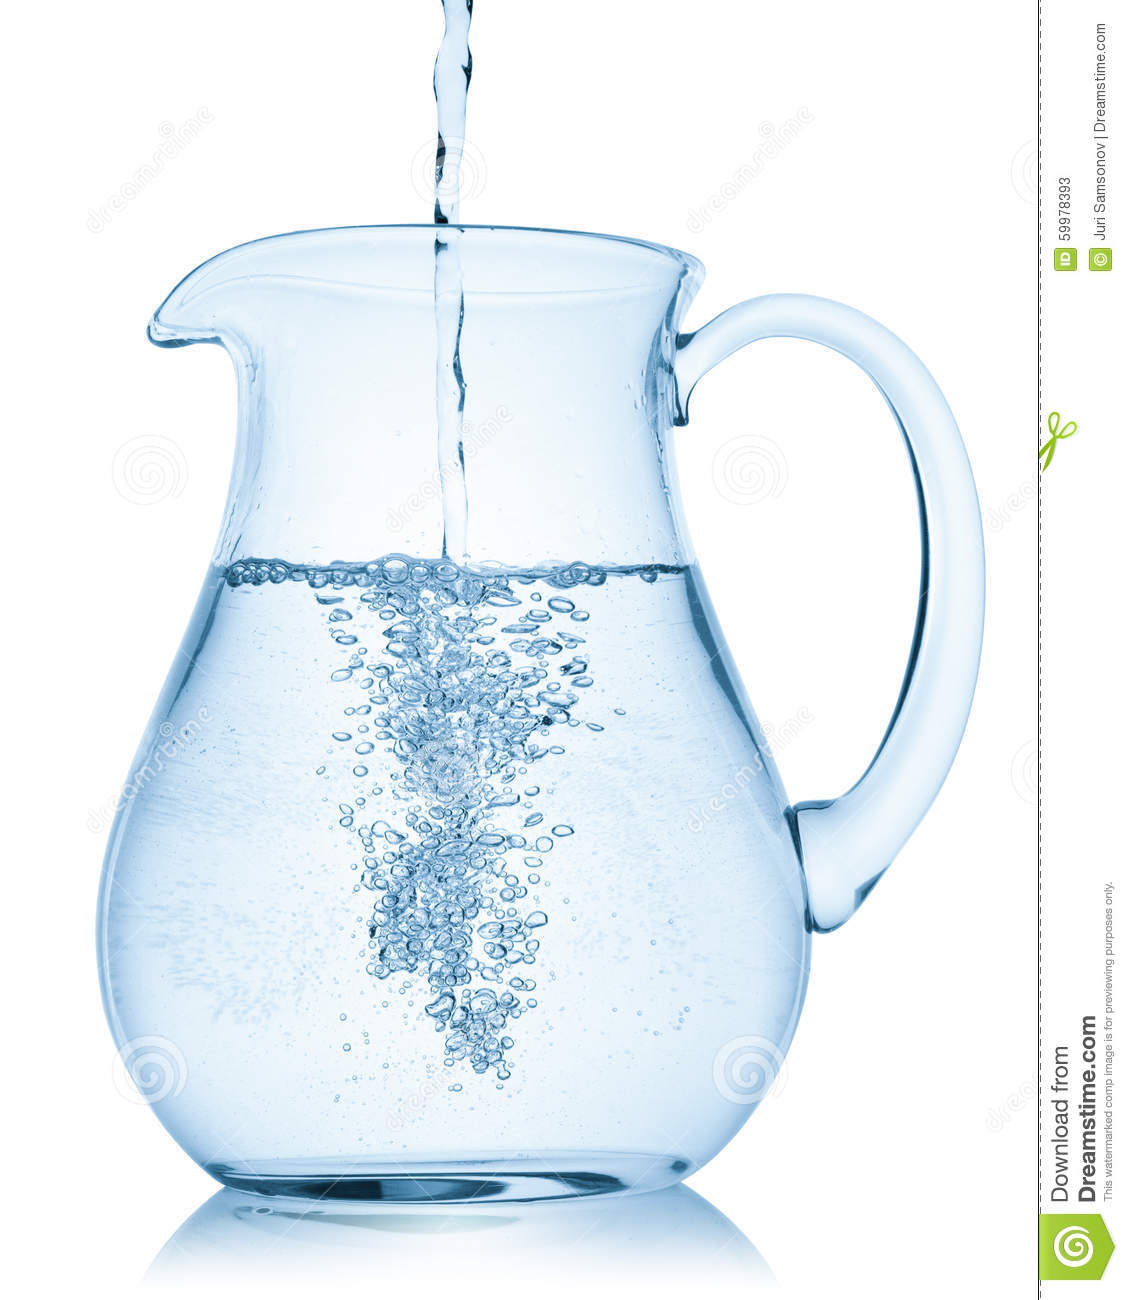 pouring water from a pitcher wwwimgkidcom the image